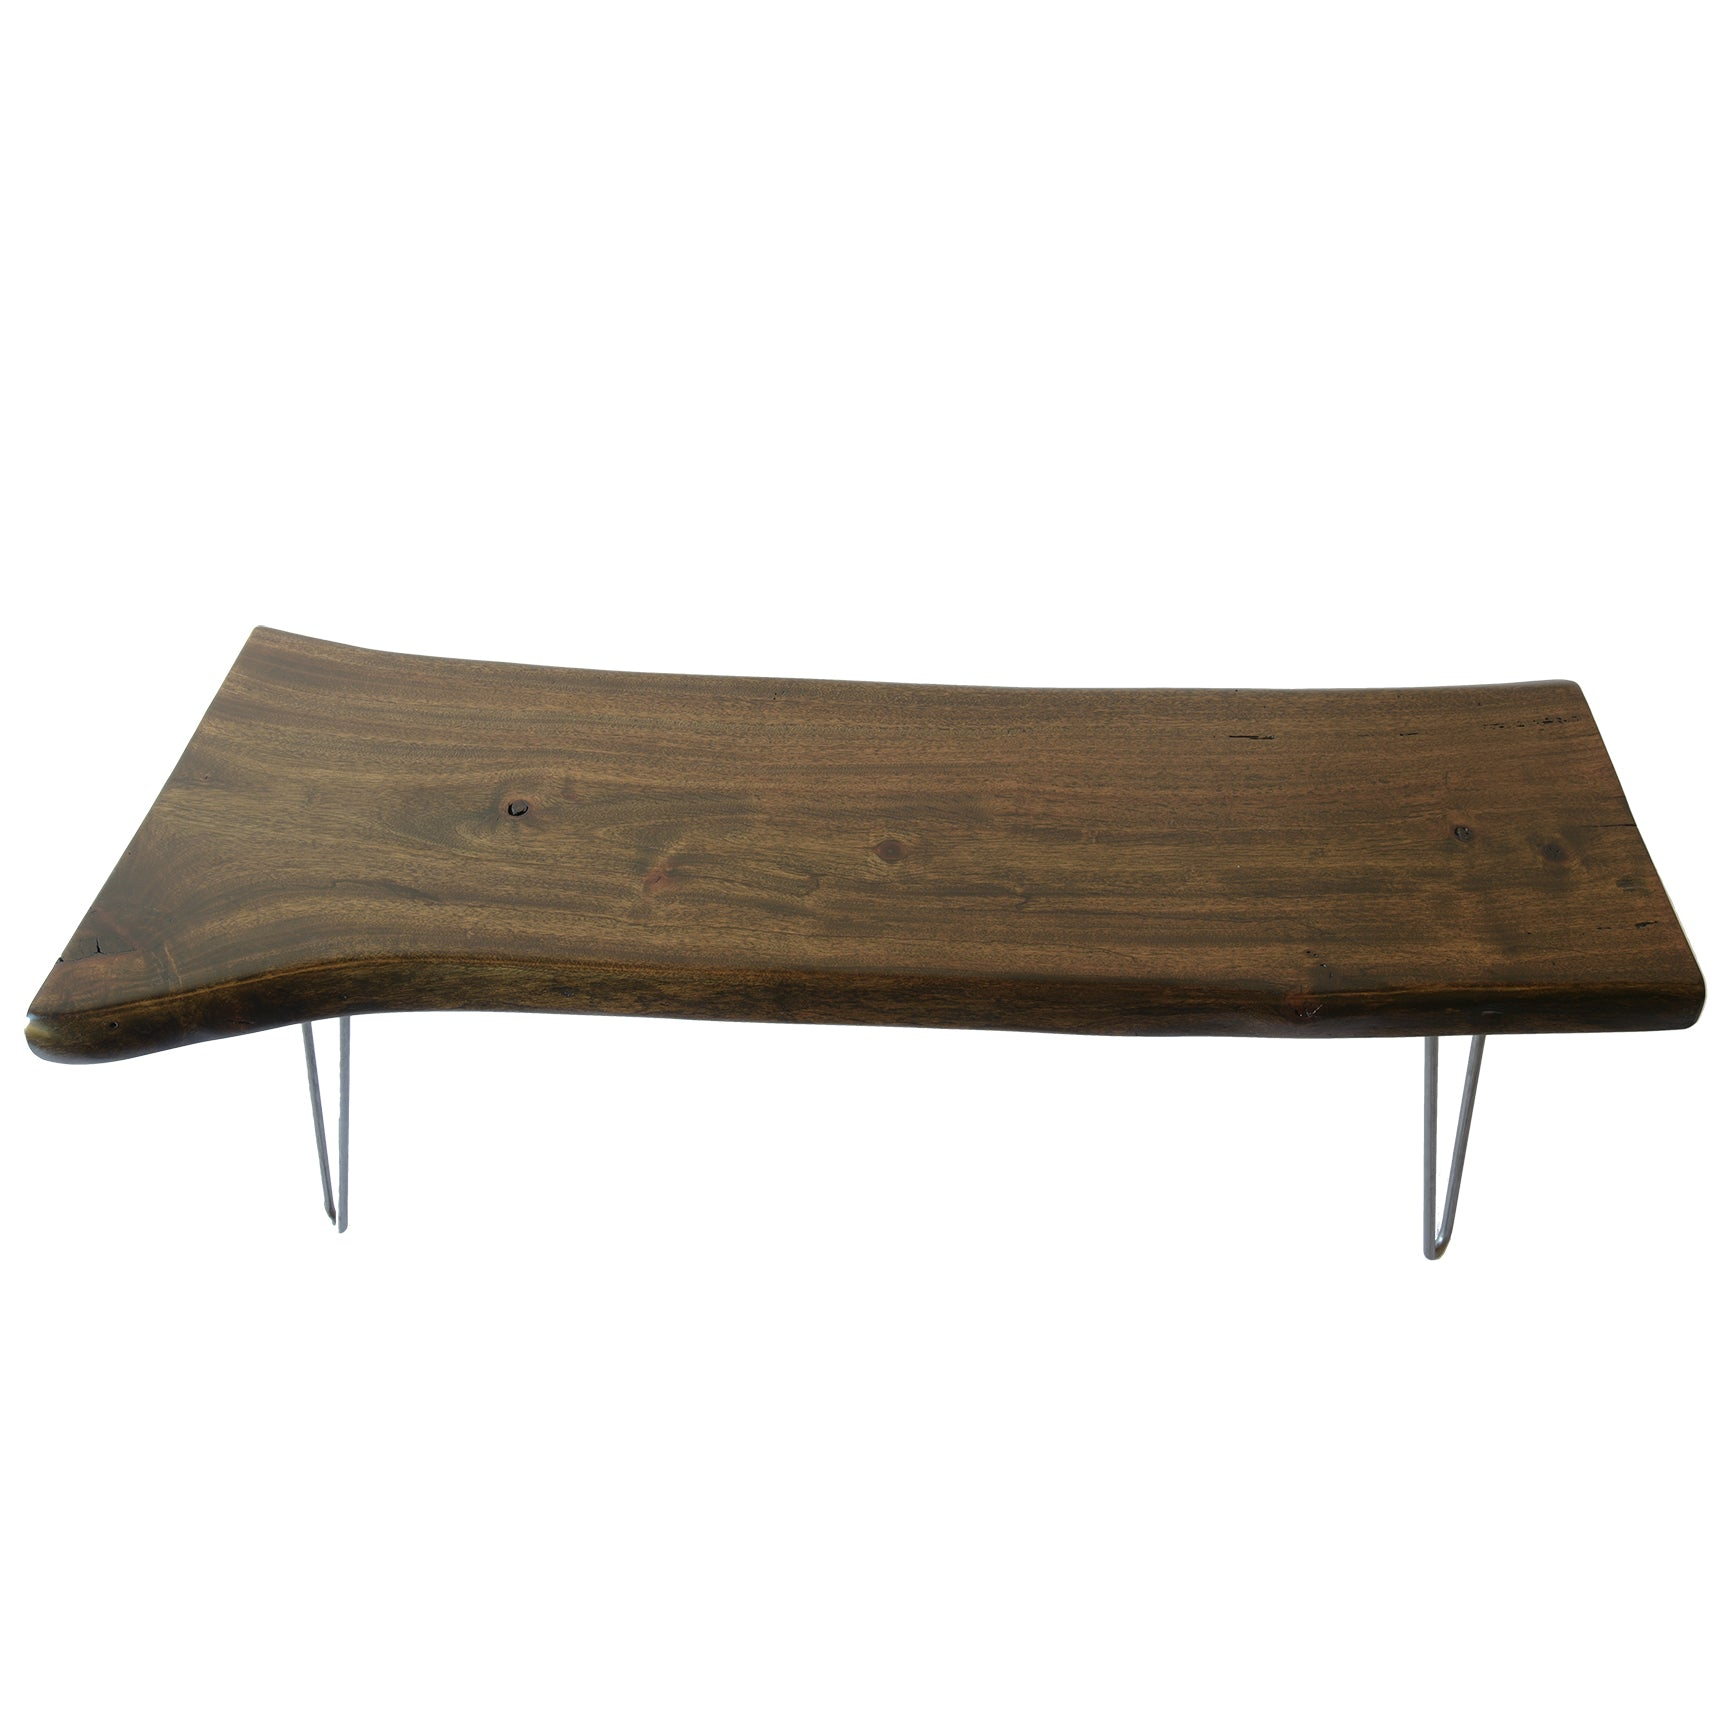 Reclaimed Rustic Wood Natural Tree Edge Coffee Table